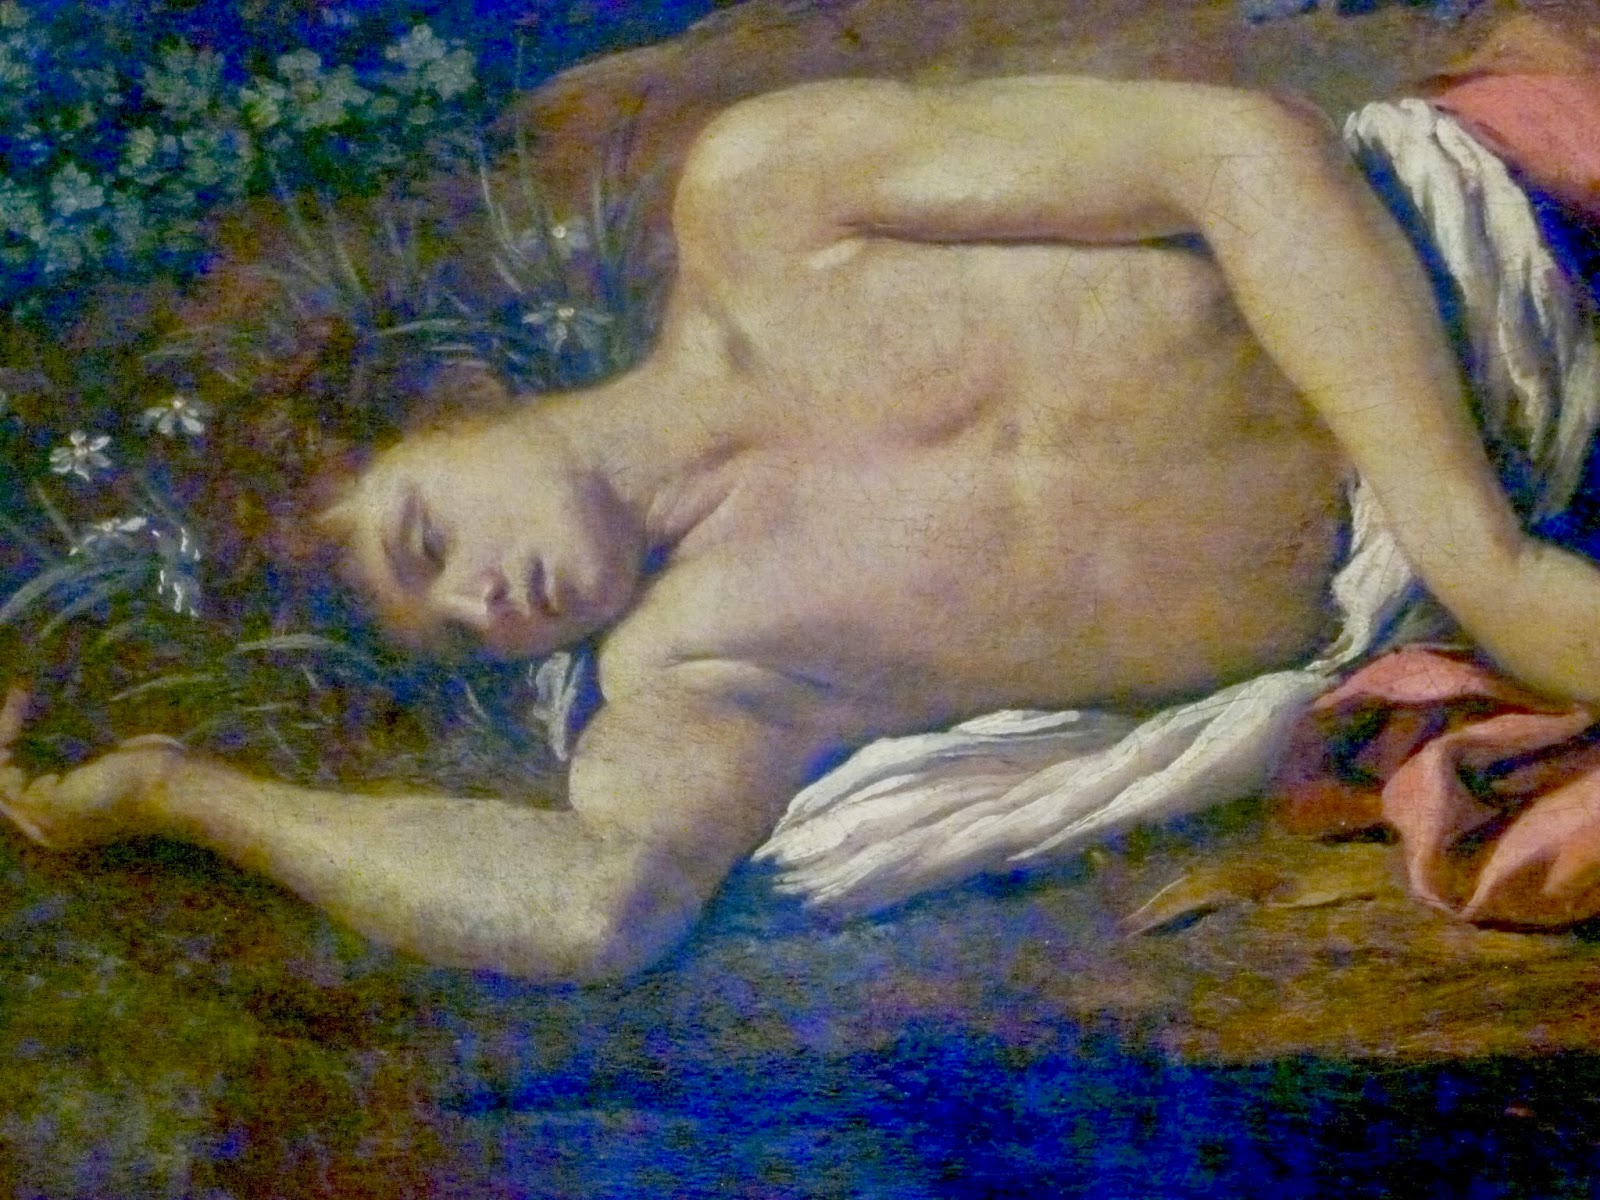 counterlight s peculiars the louvre a detail of the dying narcissus from poussin s echo and narcissus an early work